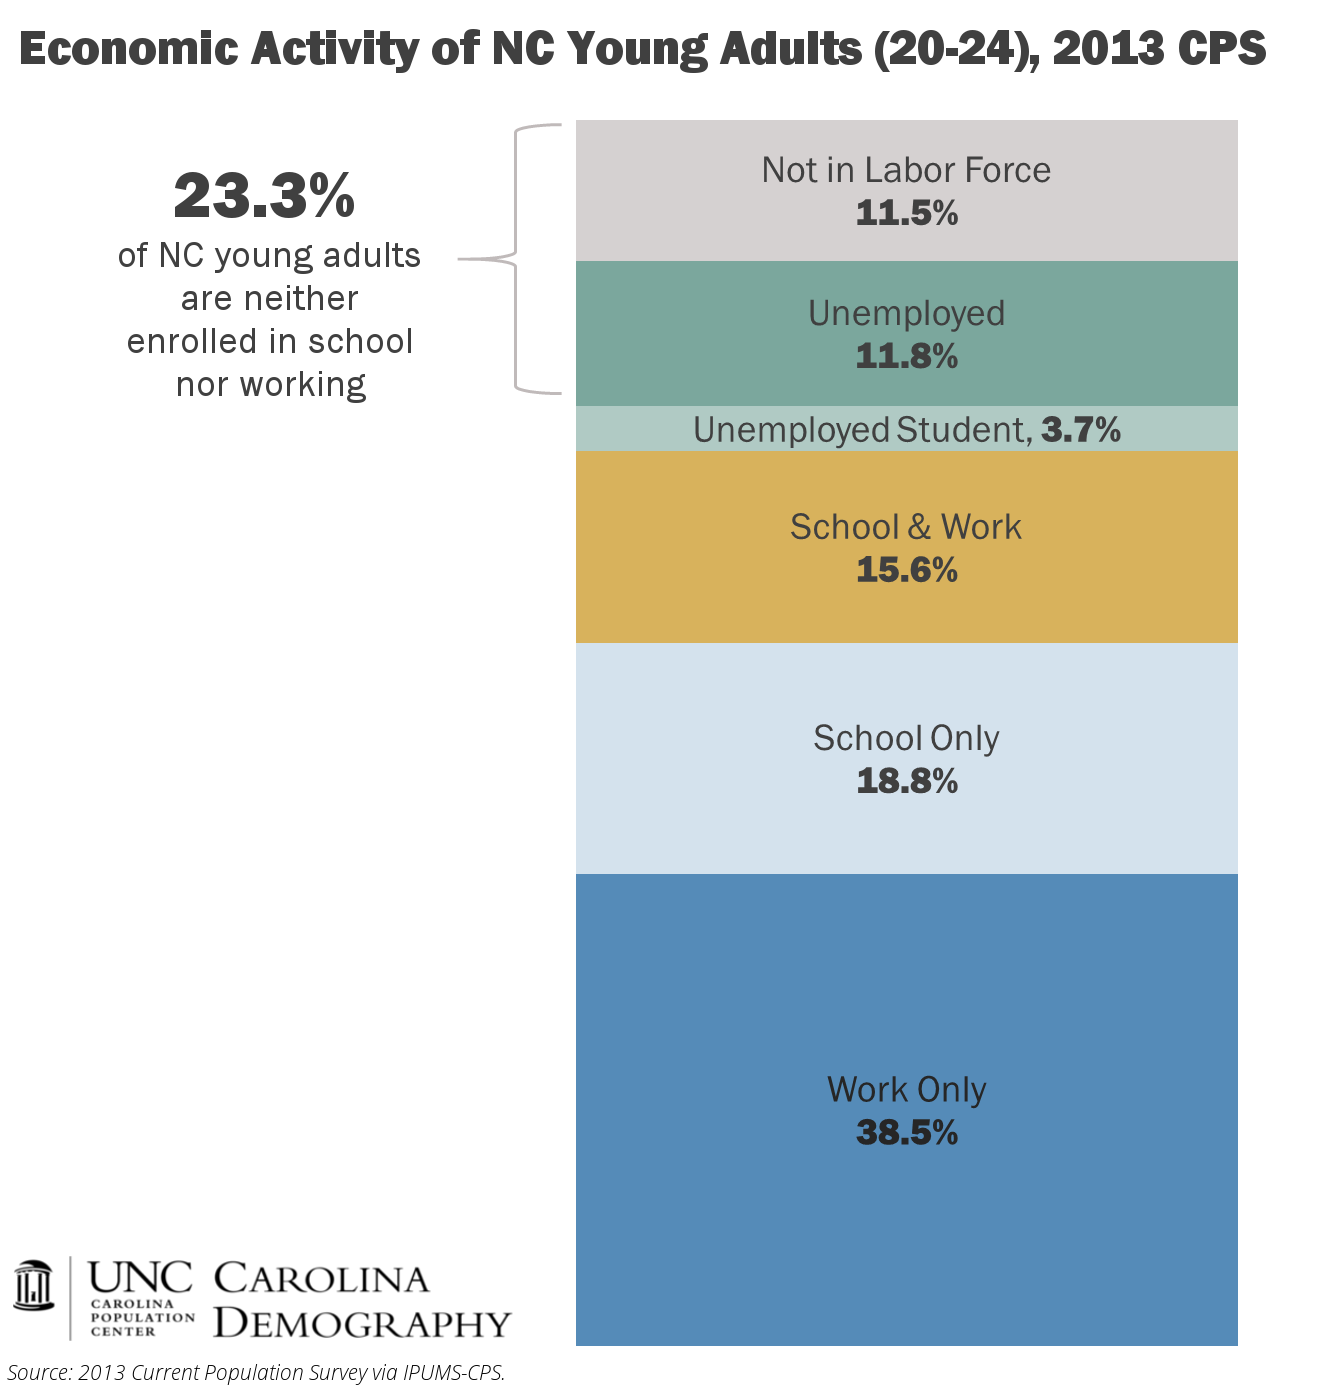 NC Young Adult Economic Activity_CD